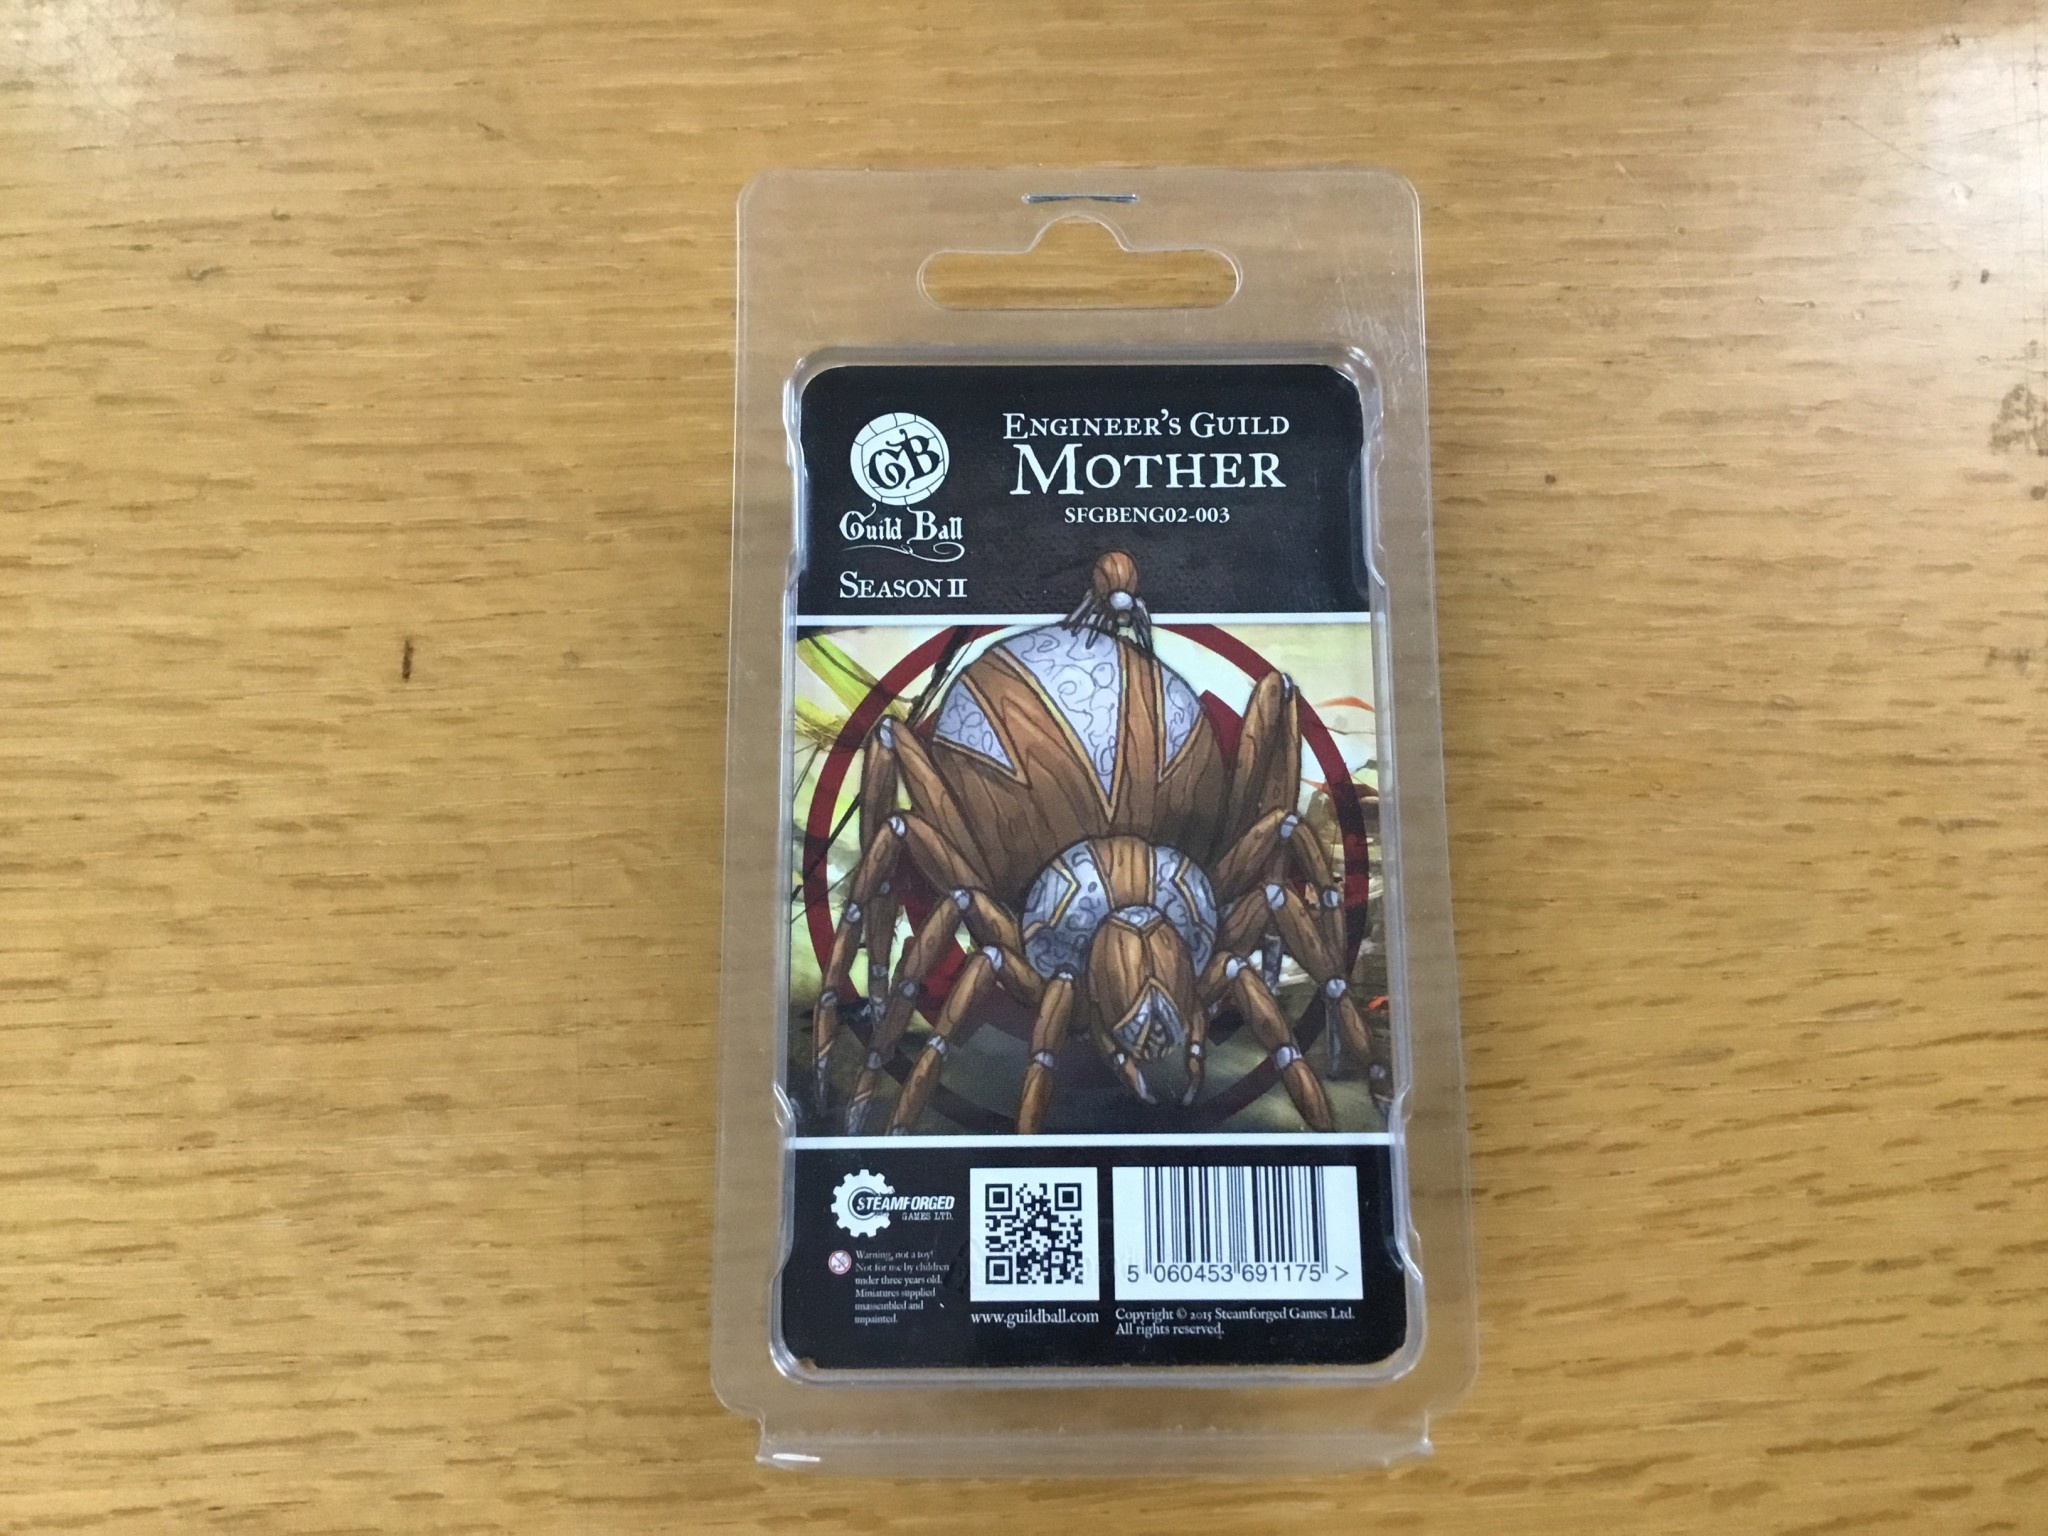 Steamforged GuildBall: Engineers guild- Mother